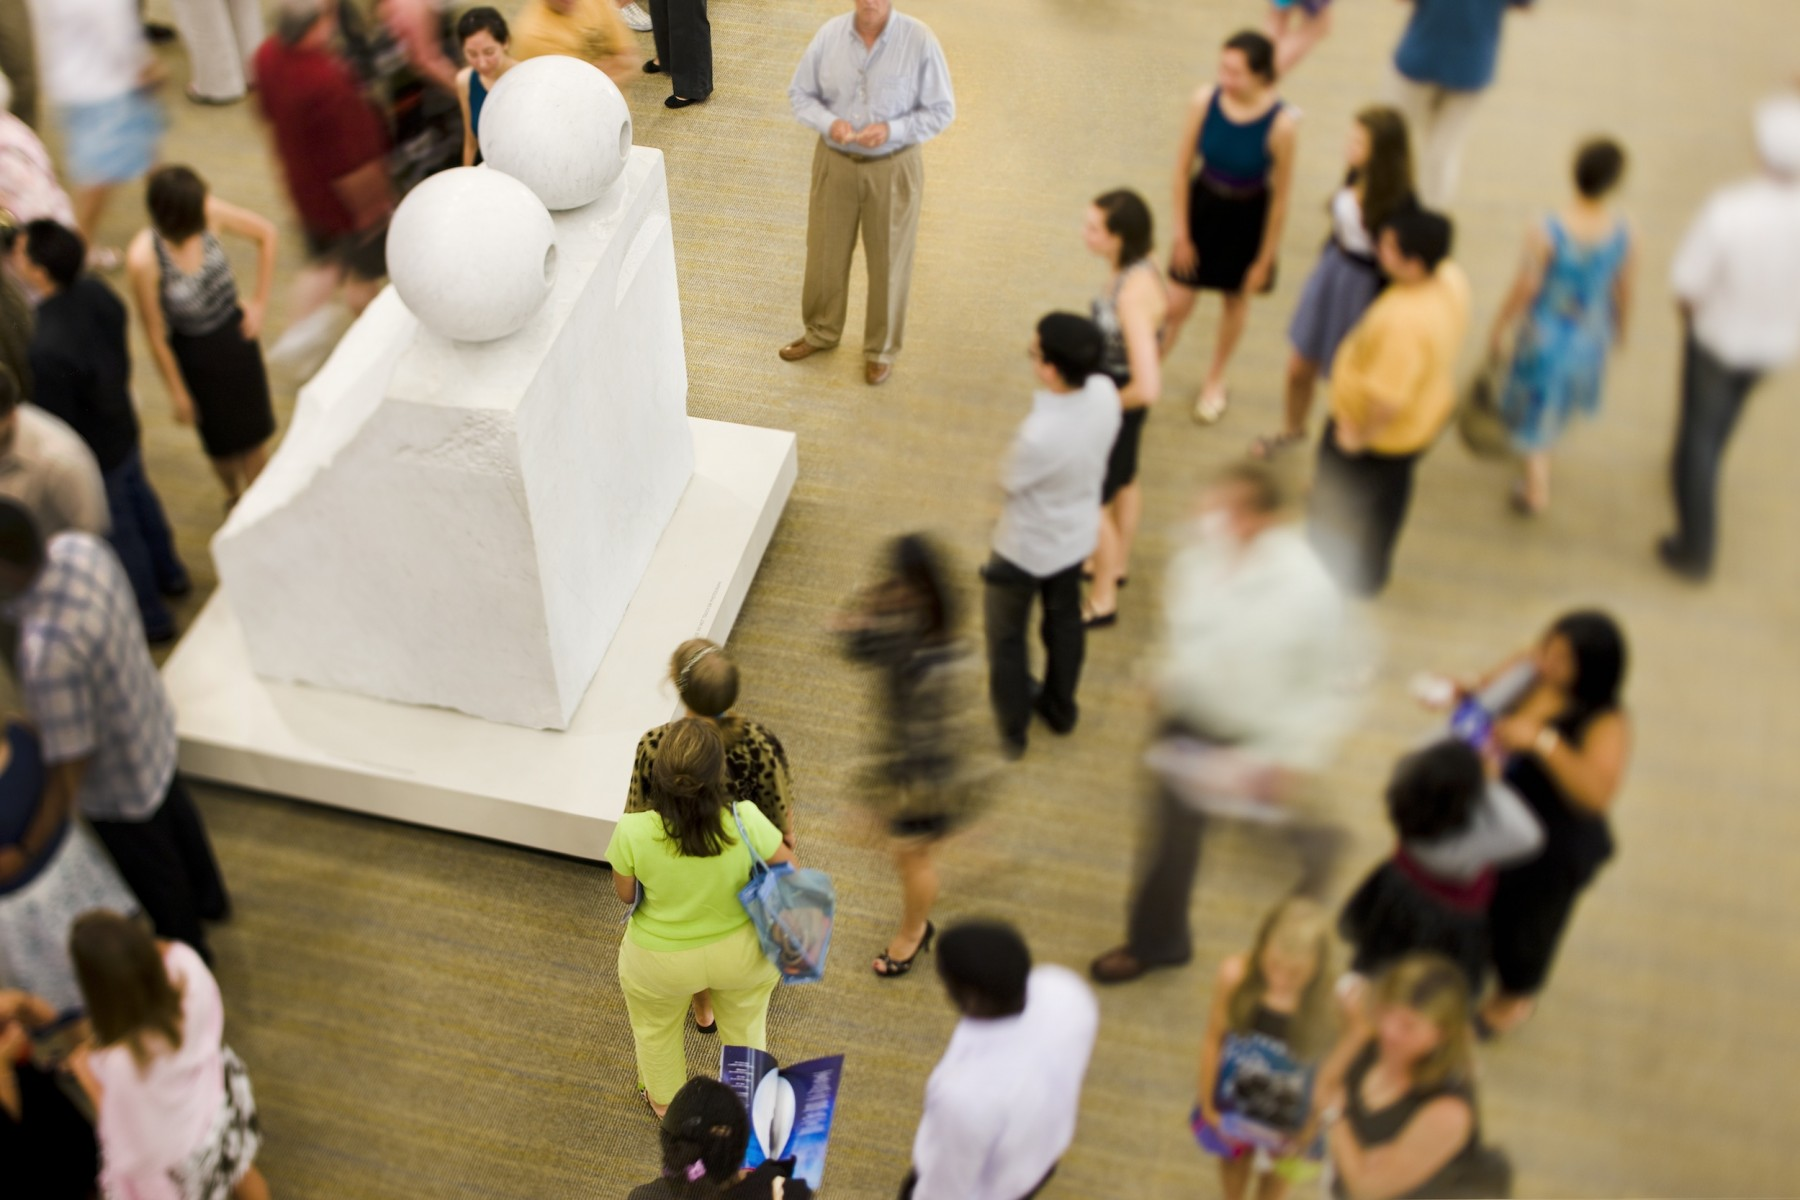 A crowd of people around a large rectangular marble sculpture with spheres on top